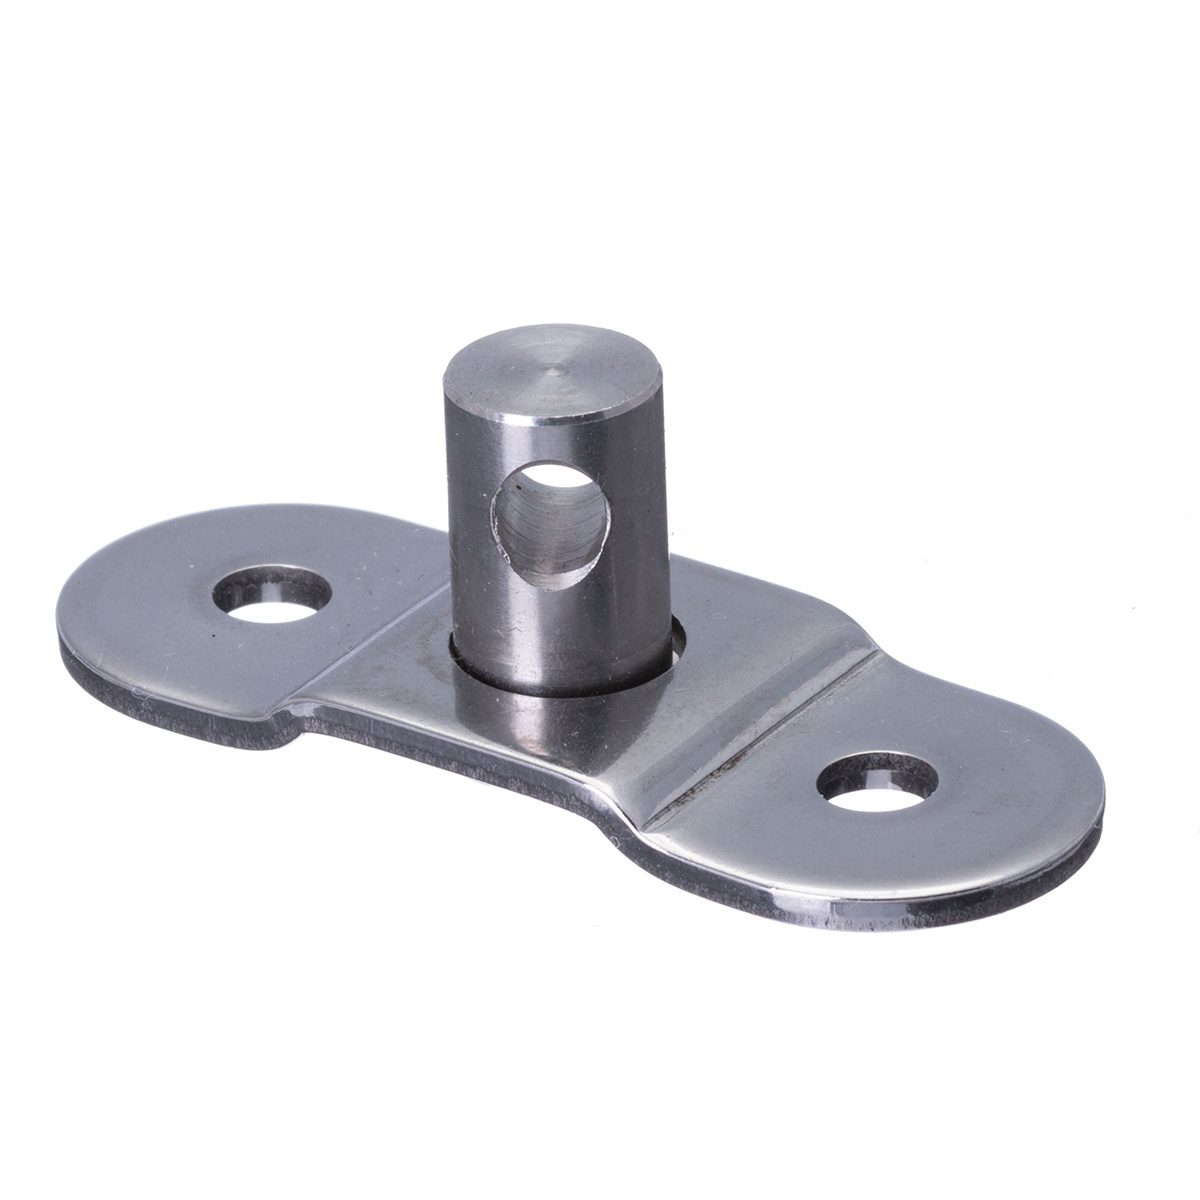 R1860 - Base Swivel oblong s/s 2 fixing  (Pk Size: 1)